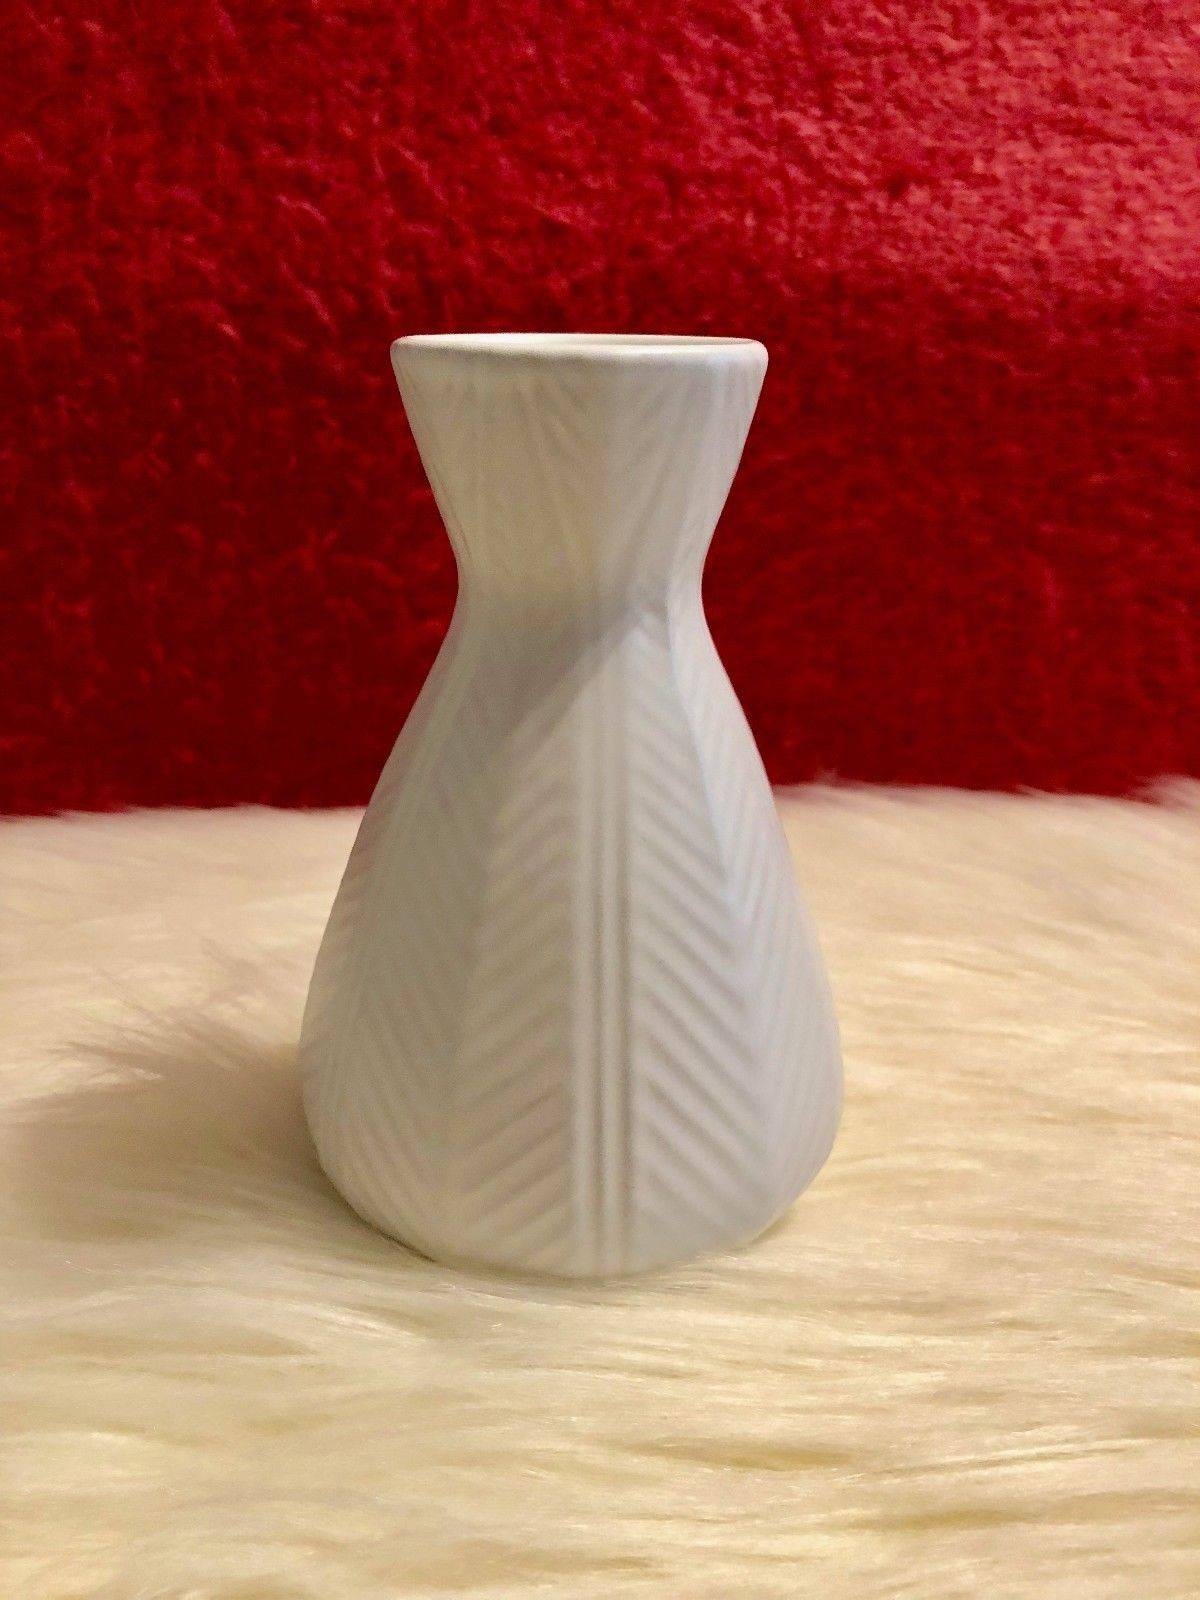 jonathan adler bel air vase of jonathan adler bud vase rare 59 00 picclick throughout jonathan adler bud vase rare 1 of 3only 1 available